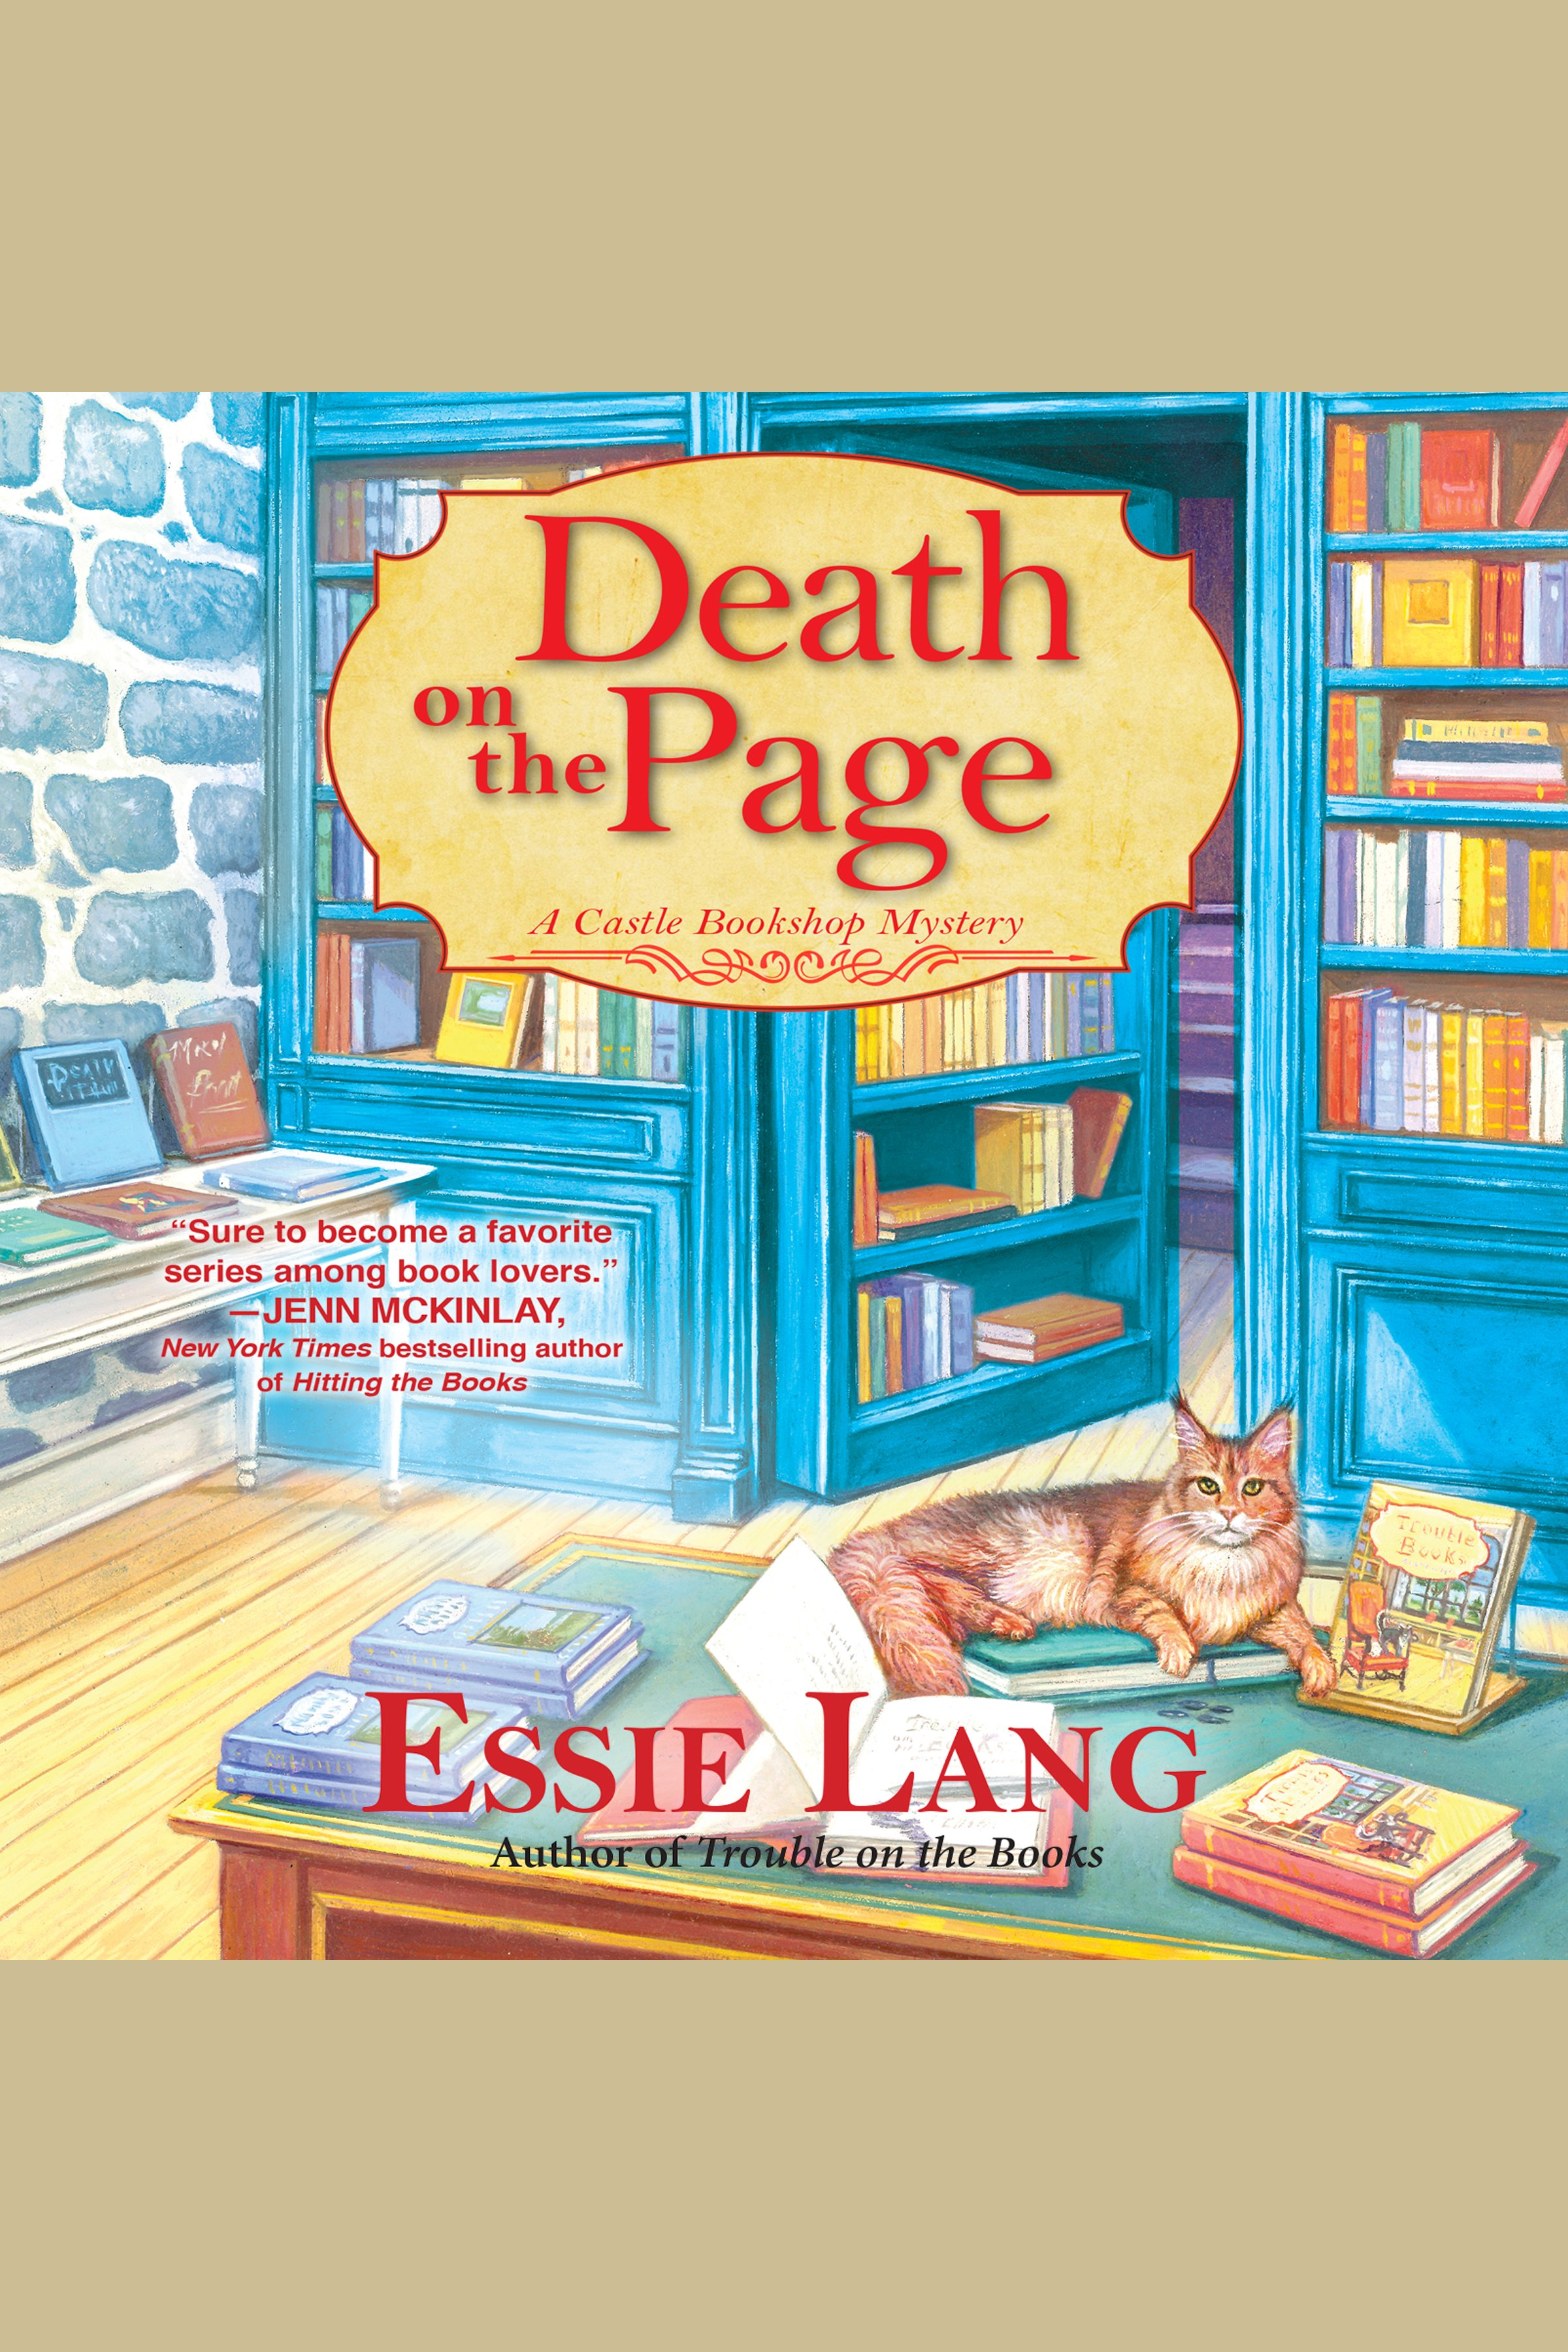 Death on the Page cover image